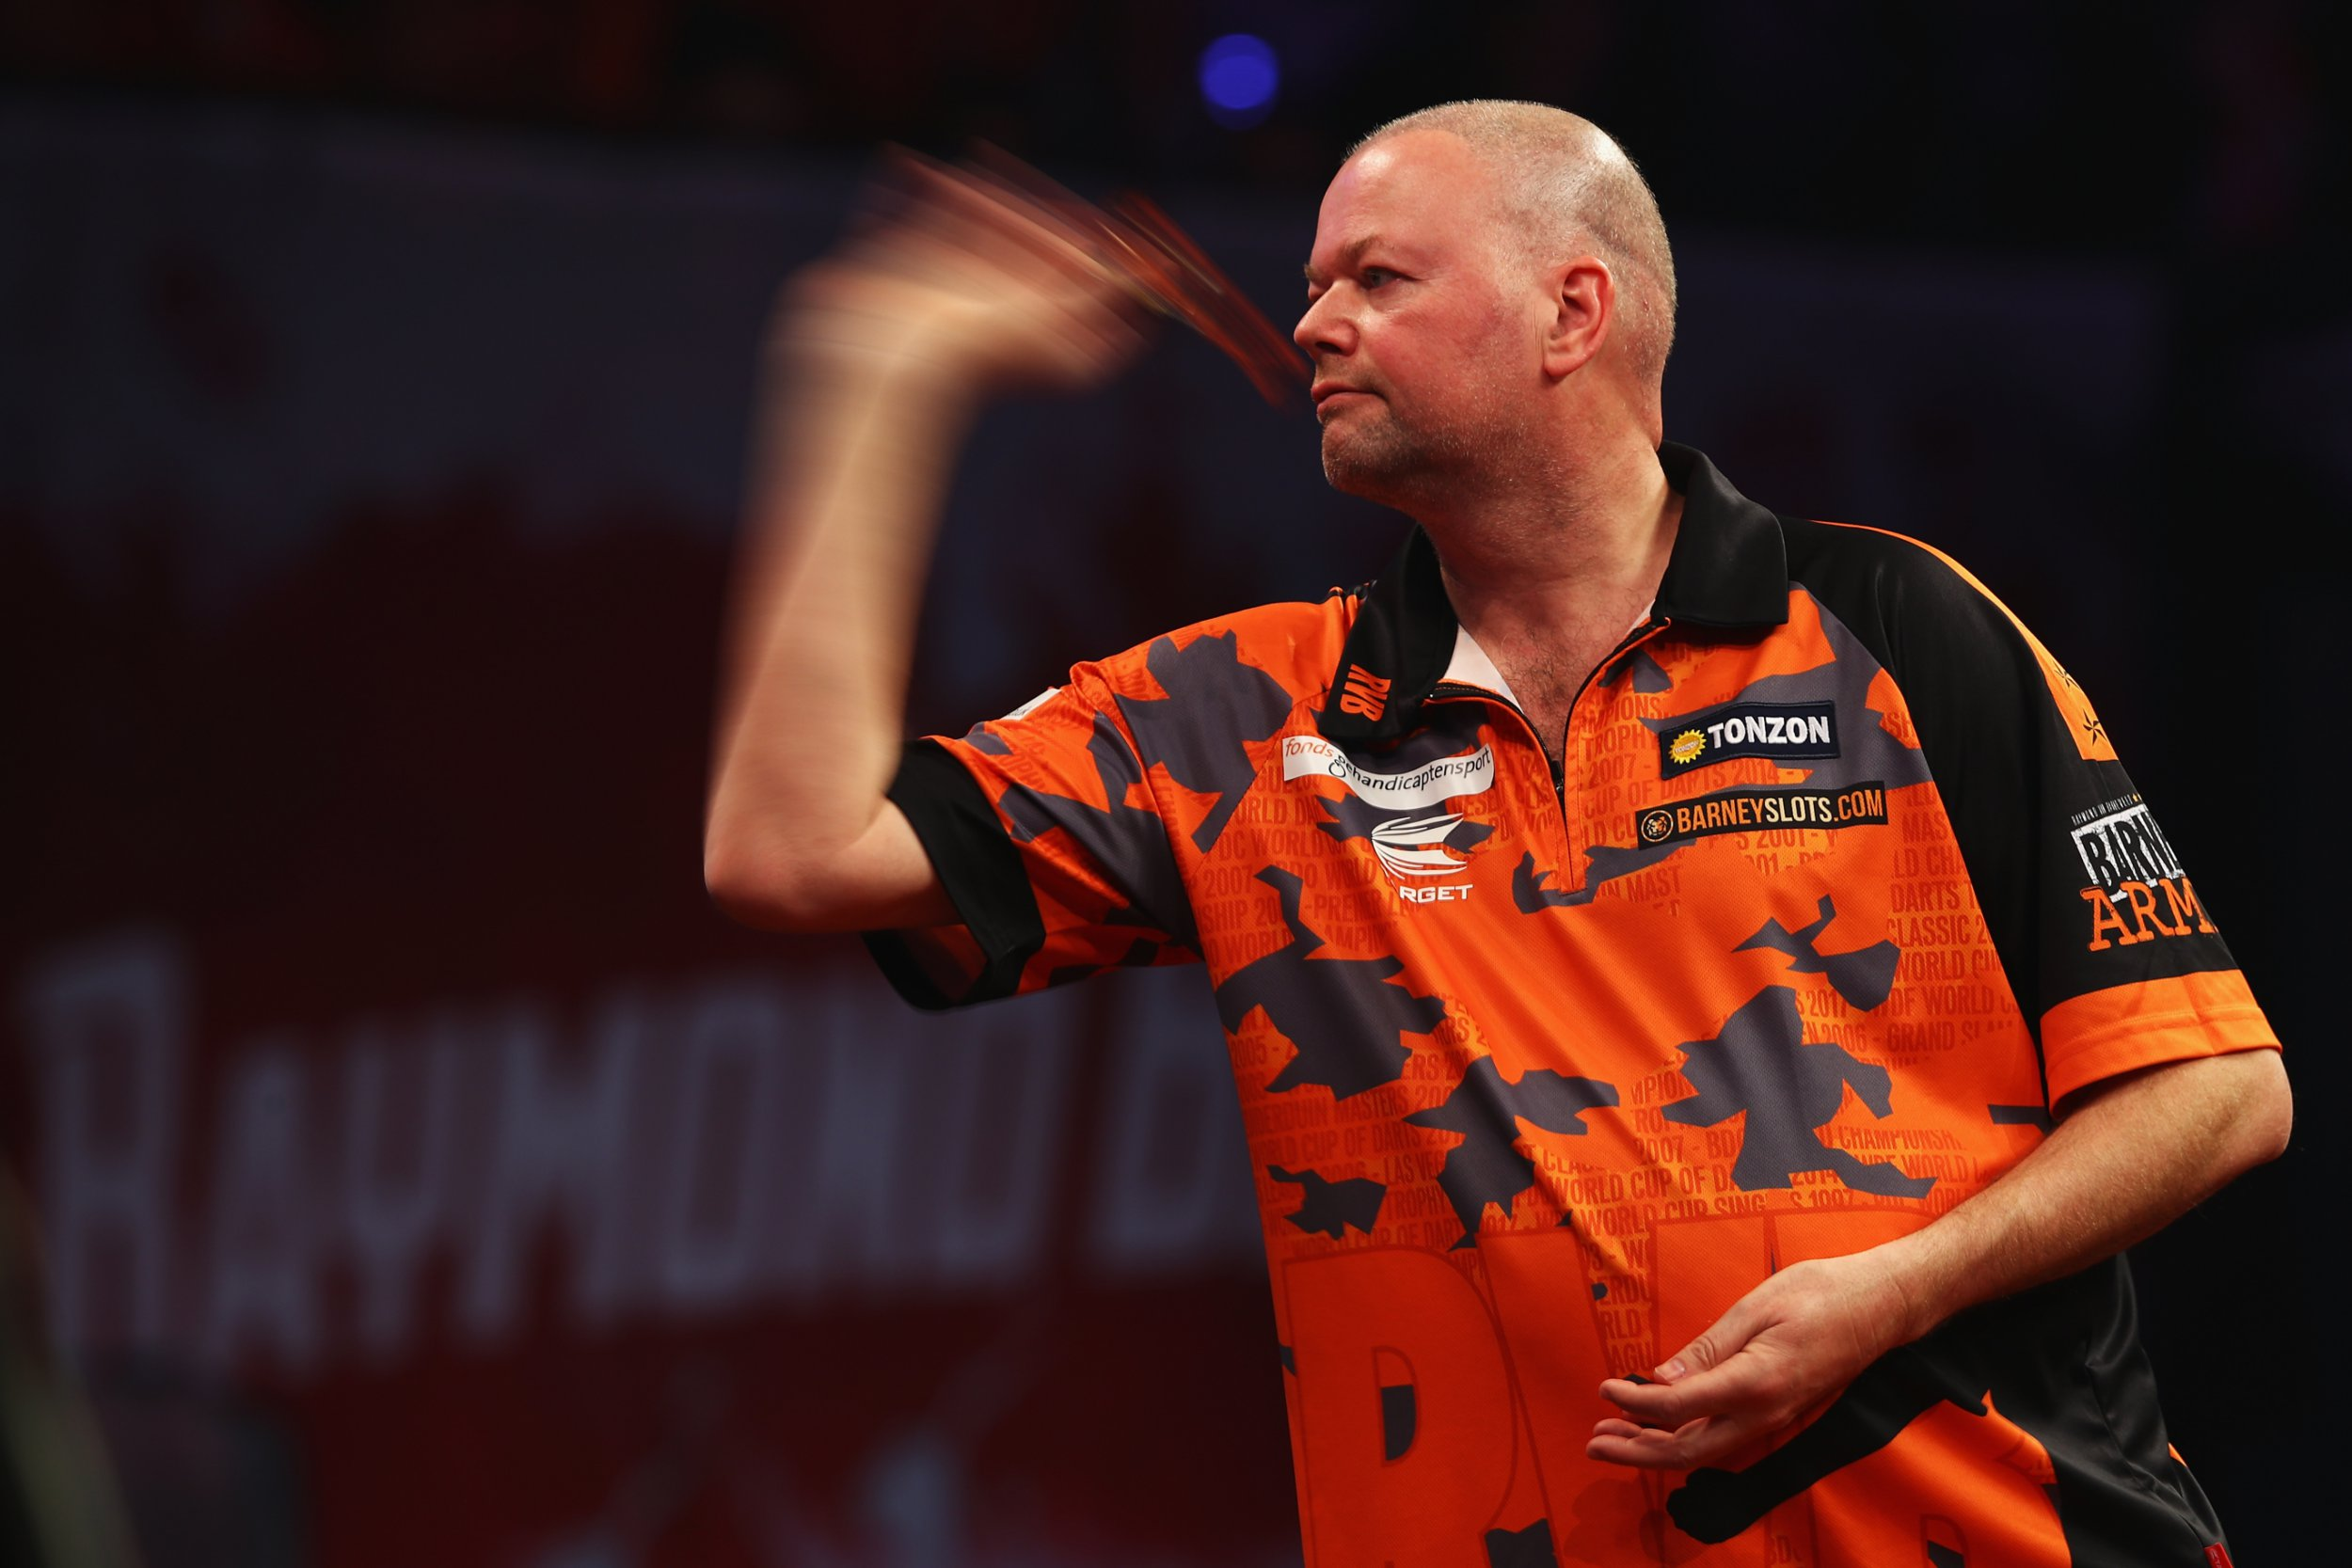 Raymond van Barneveld could get a place in the World Cup of Darts, says Daryl Gurney